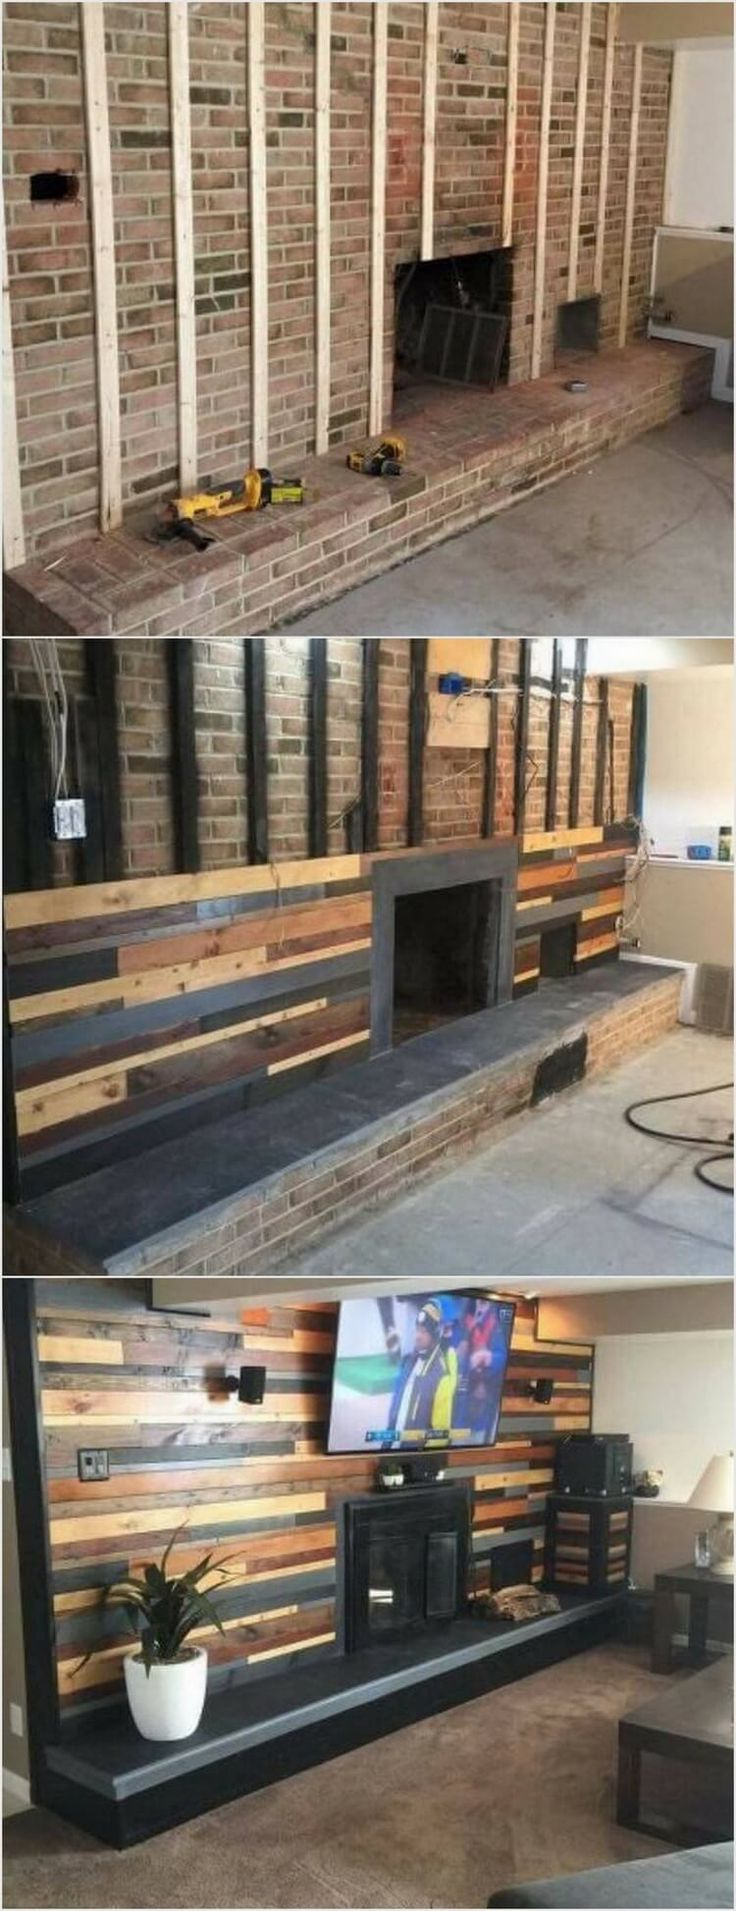 First we have the unique looking wood pallet wall paneling fire place! This  idea is